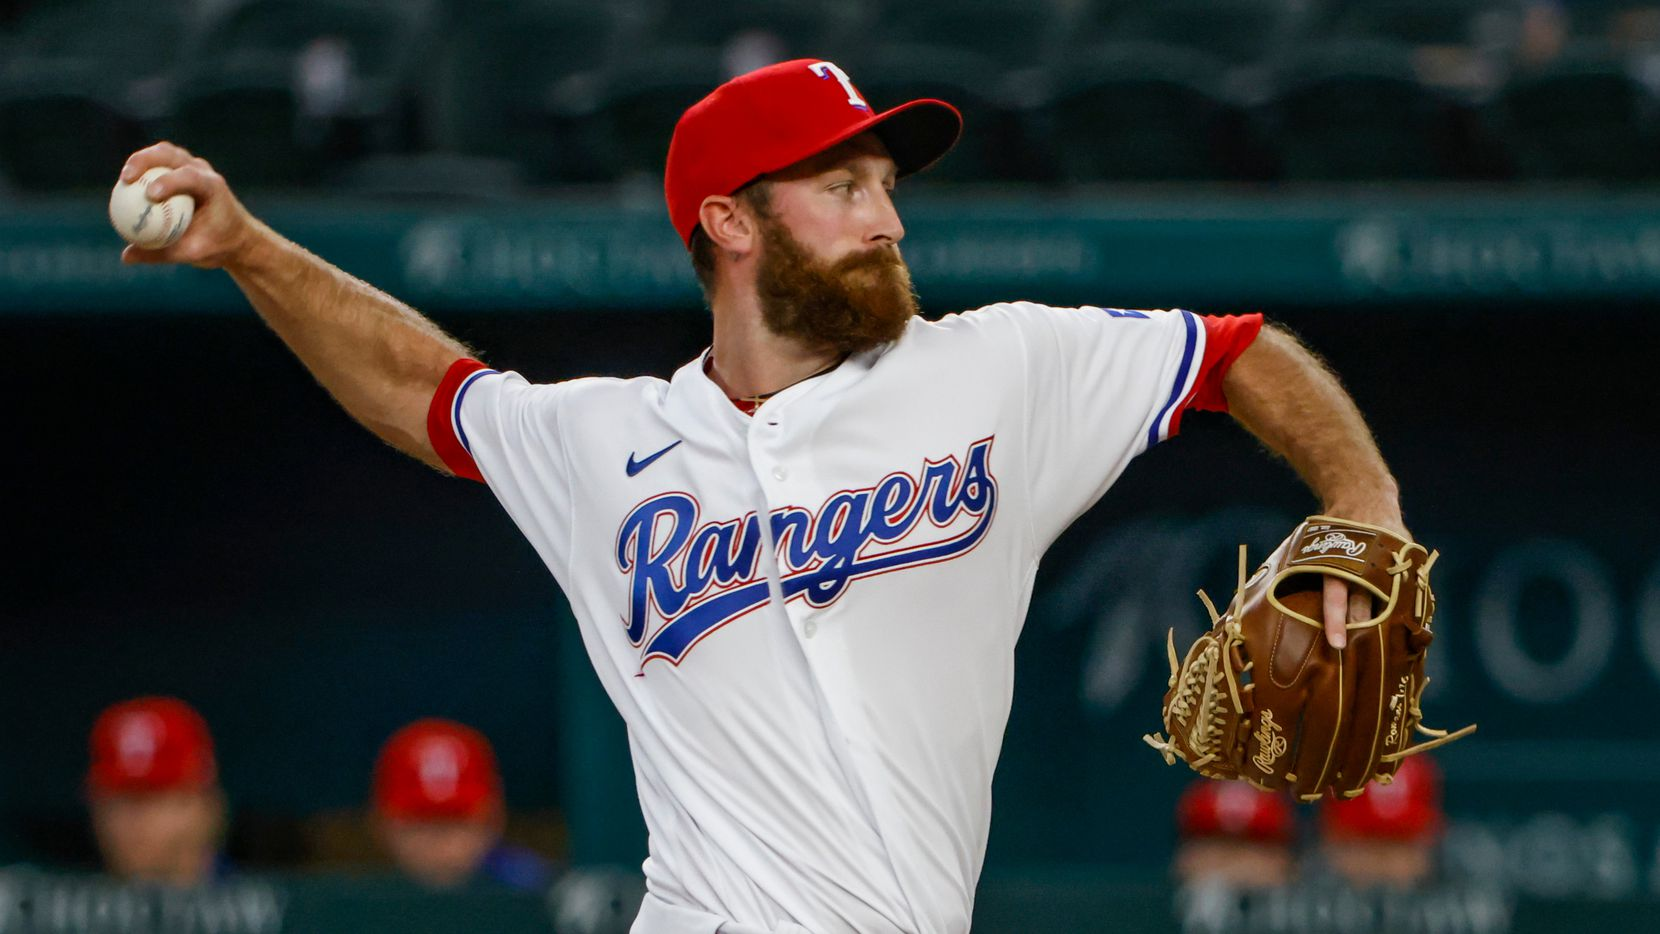 Texas Rangers relief pitcher Spencer Patton pitches during the top of the ninth inning at Globe Life Field in Arlington, Texas, in Dallas on Wednesday, June 9, 2021. This was his first MLB appearance in 5 years.